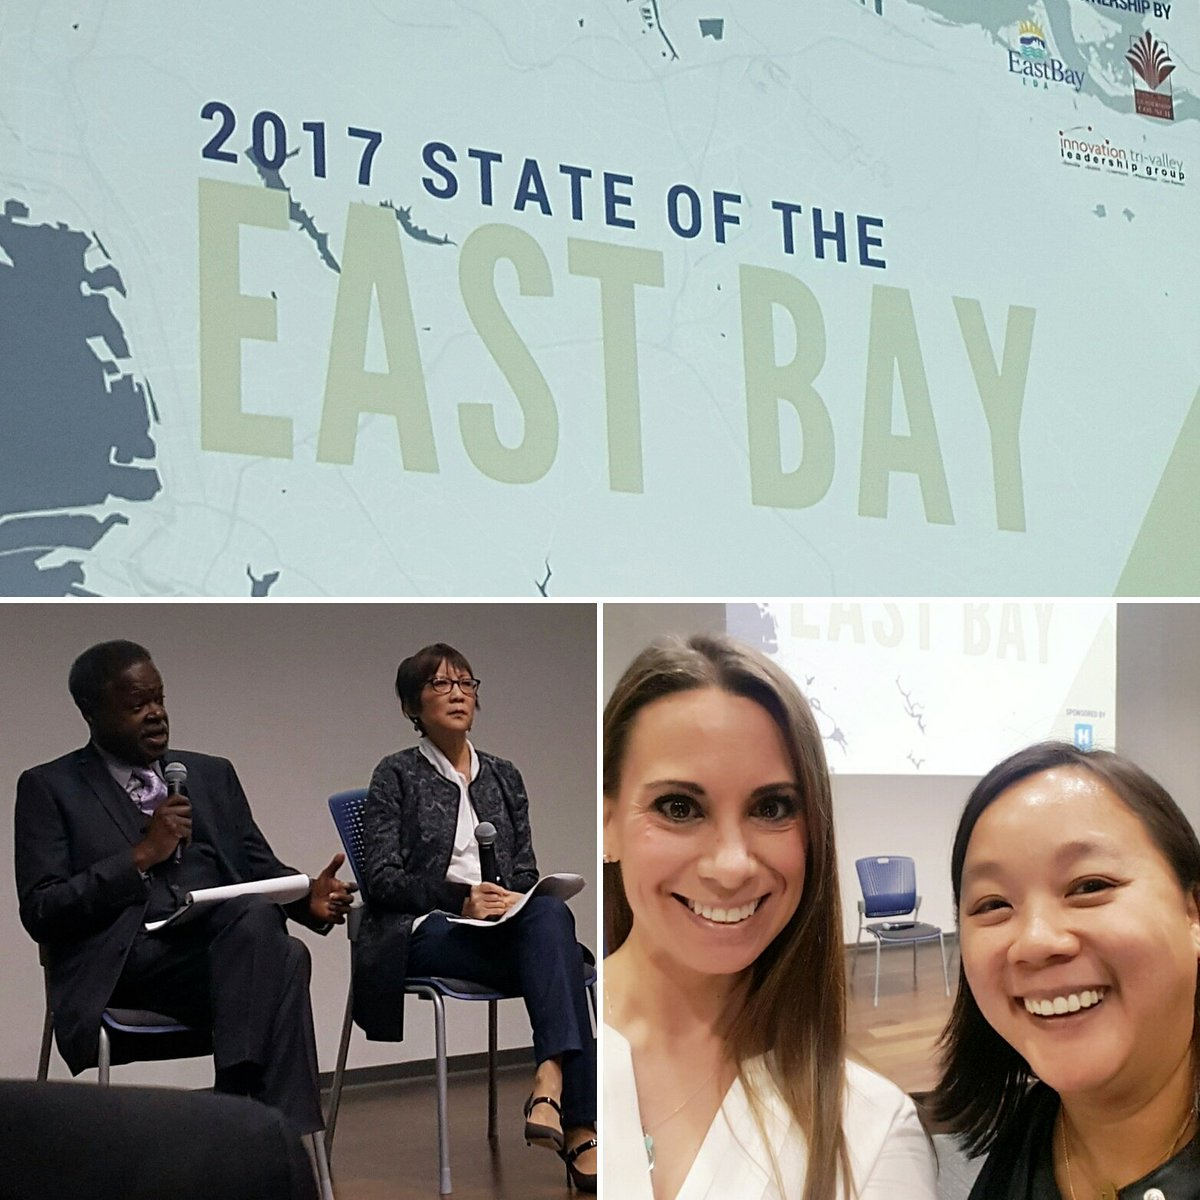 Representing @jloakeastbay at the State of the East Bay. Ongoing theme is 3/4 of our pillars: jobs, food, housing. #jloeb #soteb #eastbayeda